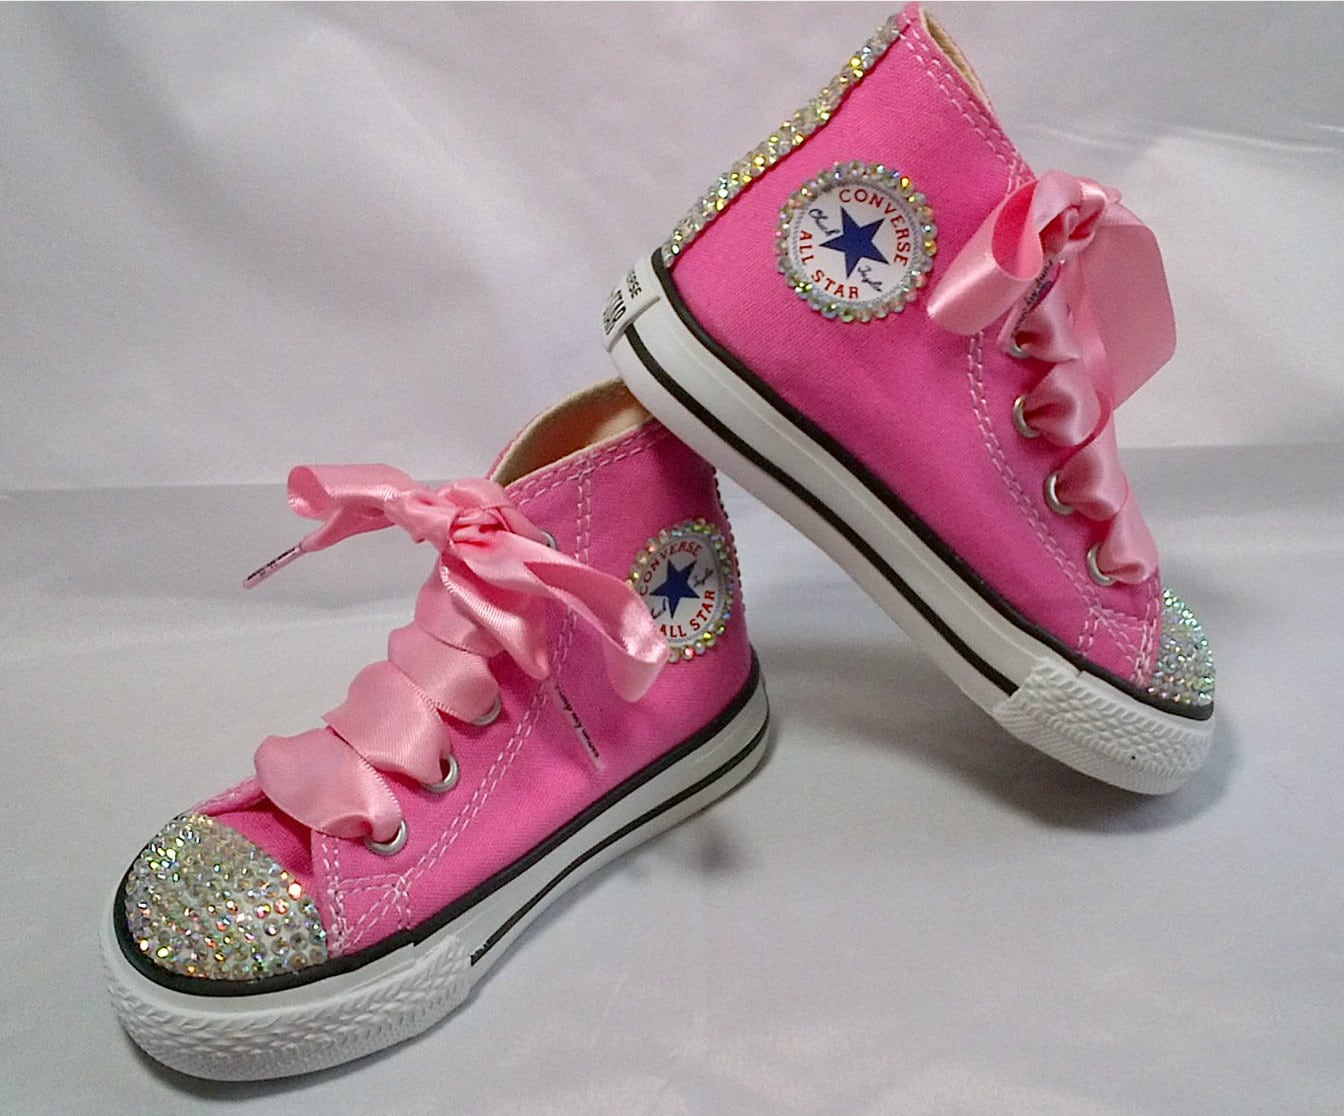 Bling Converse Wedding Shoes Blinged Kids Converse Wedding